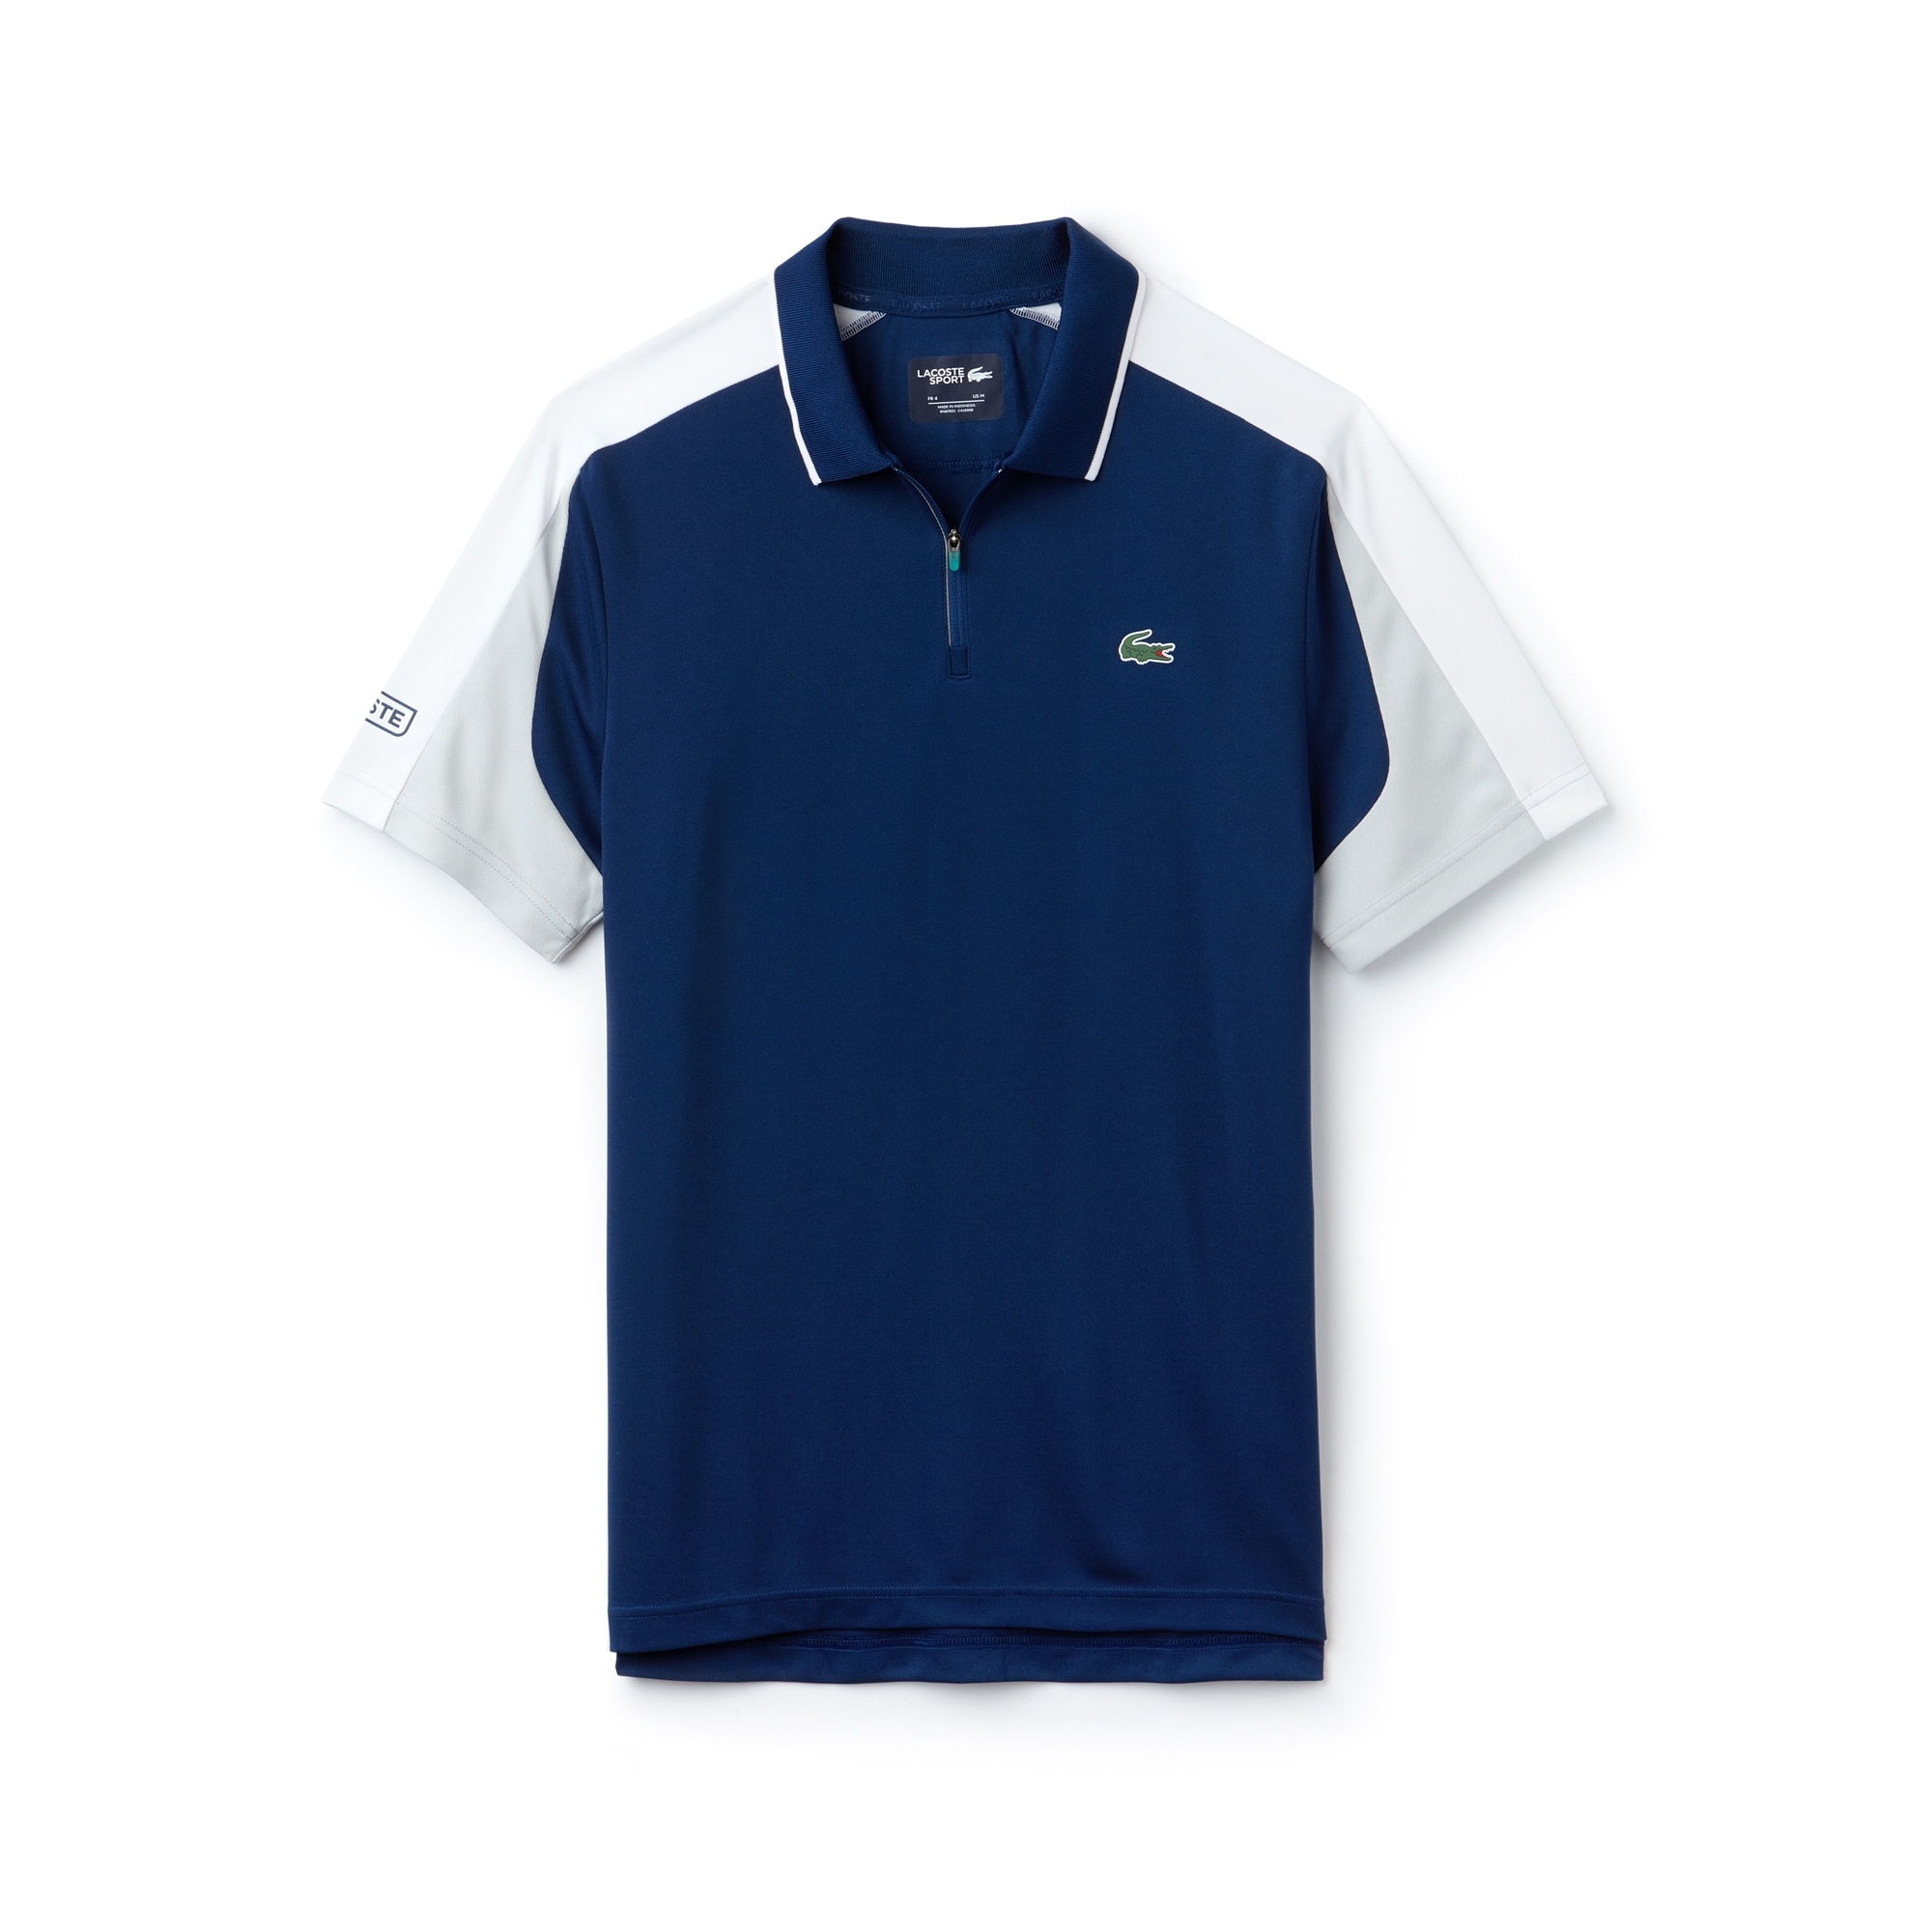 라코스테 Lacoste Mens SPORT Zip Neck Contrast Bands Pique Tennis Polo,inkwell/white-armour-pape